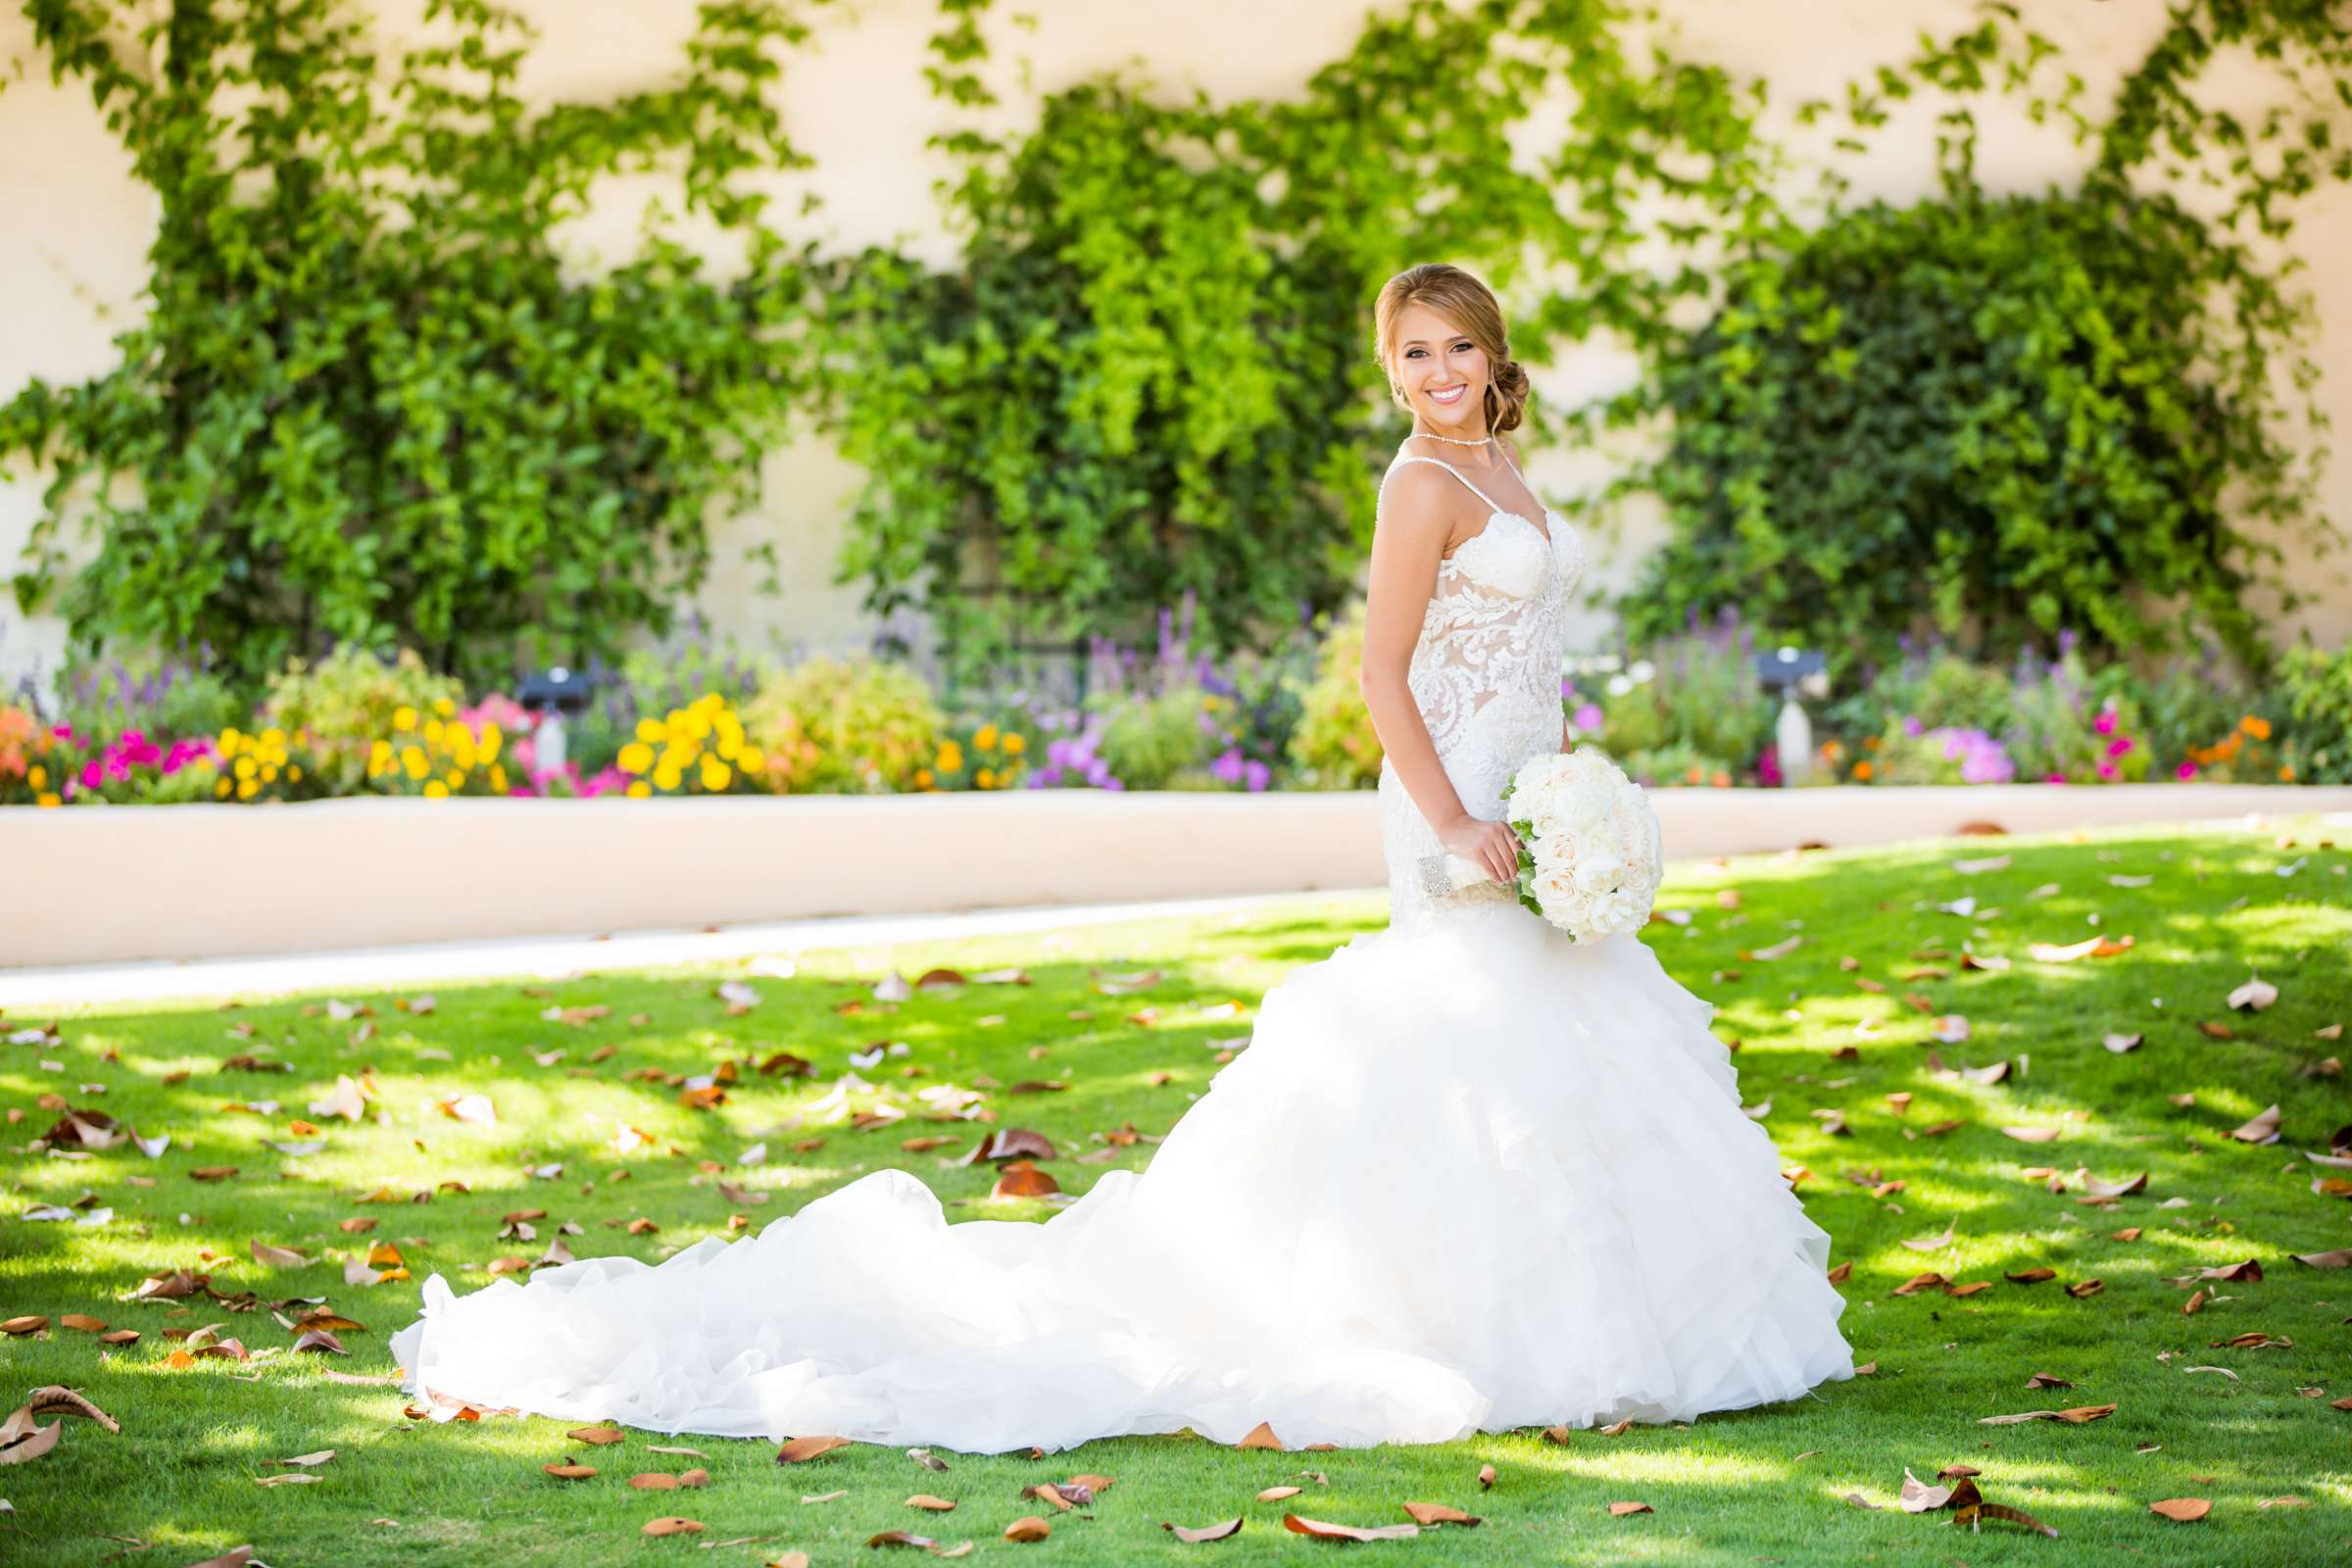 Fairbanks Ranch Country Club Wedding coordinated by Monarch Weddings, Gabriella and Kyle Wedding Photo #58 by True Photography